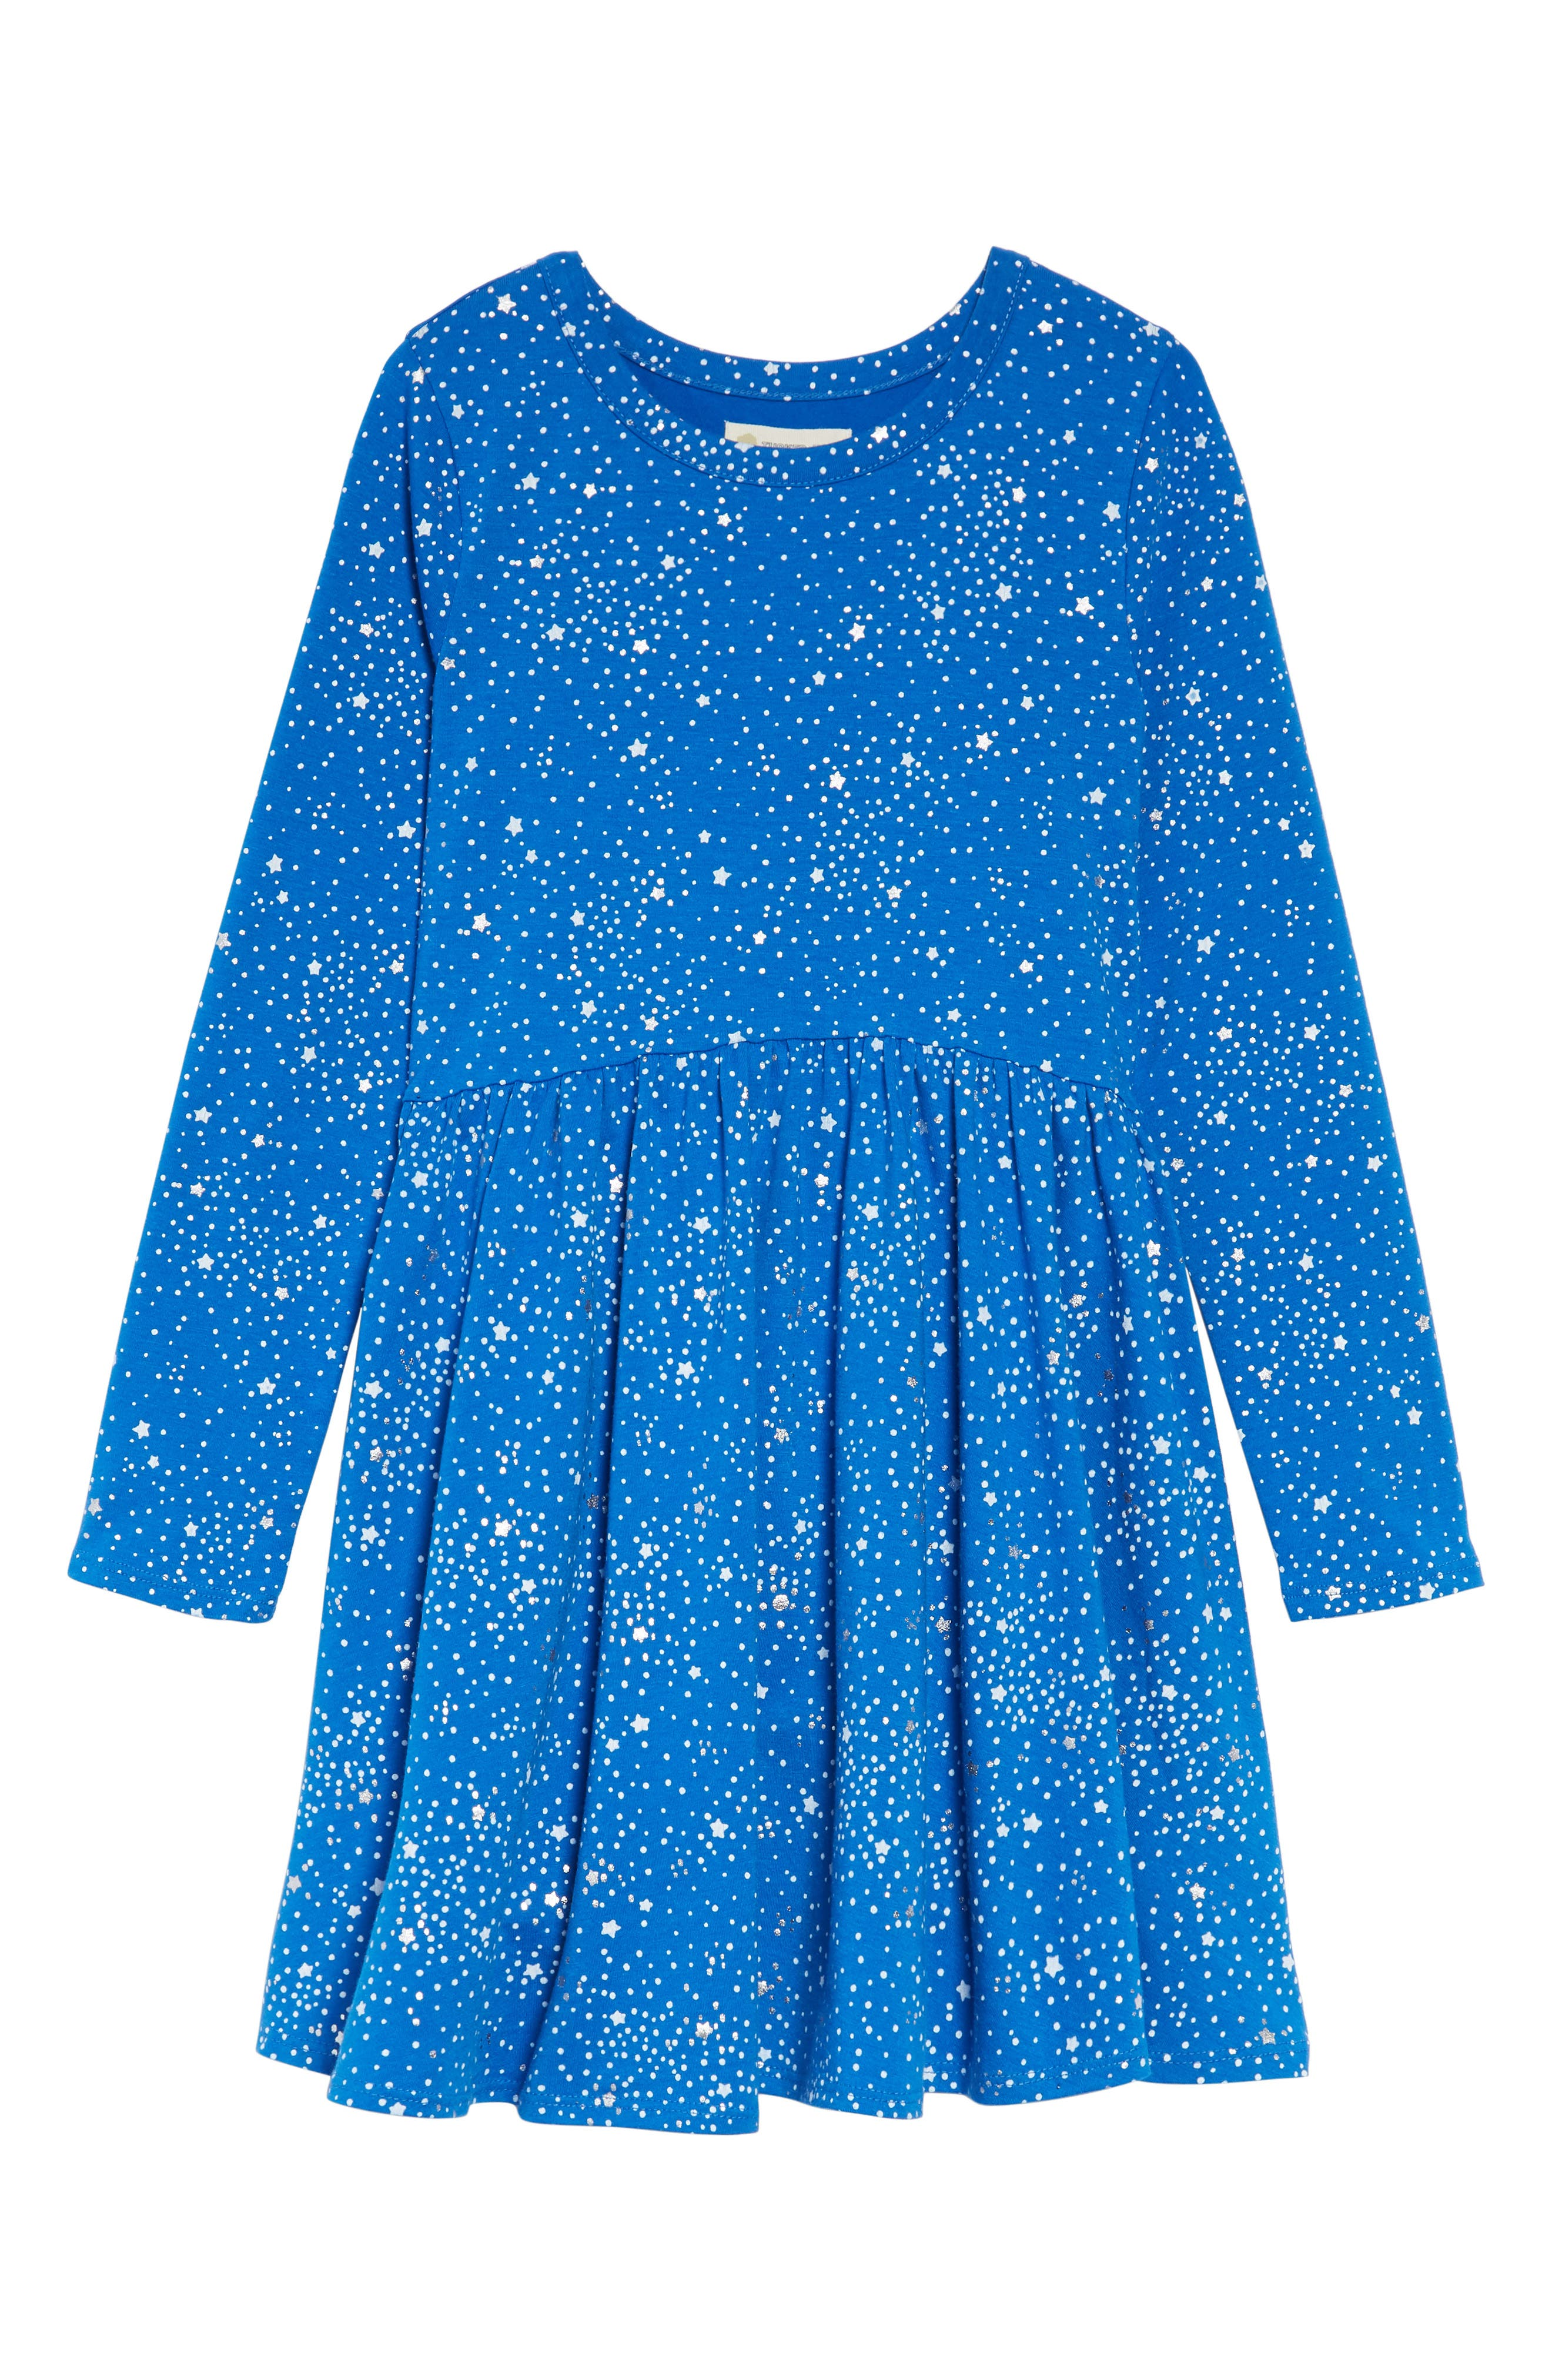 Print Knit Dress,                             Main thumbnail 1, color,                             BLUE PRINCESS SPOTS AND STARS